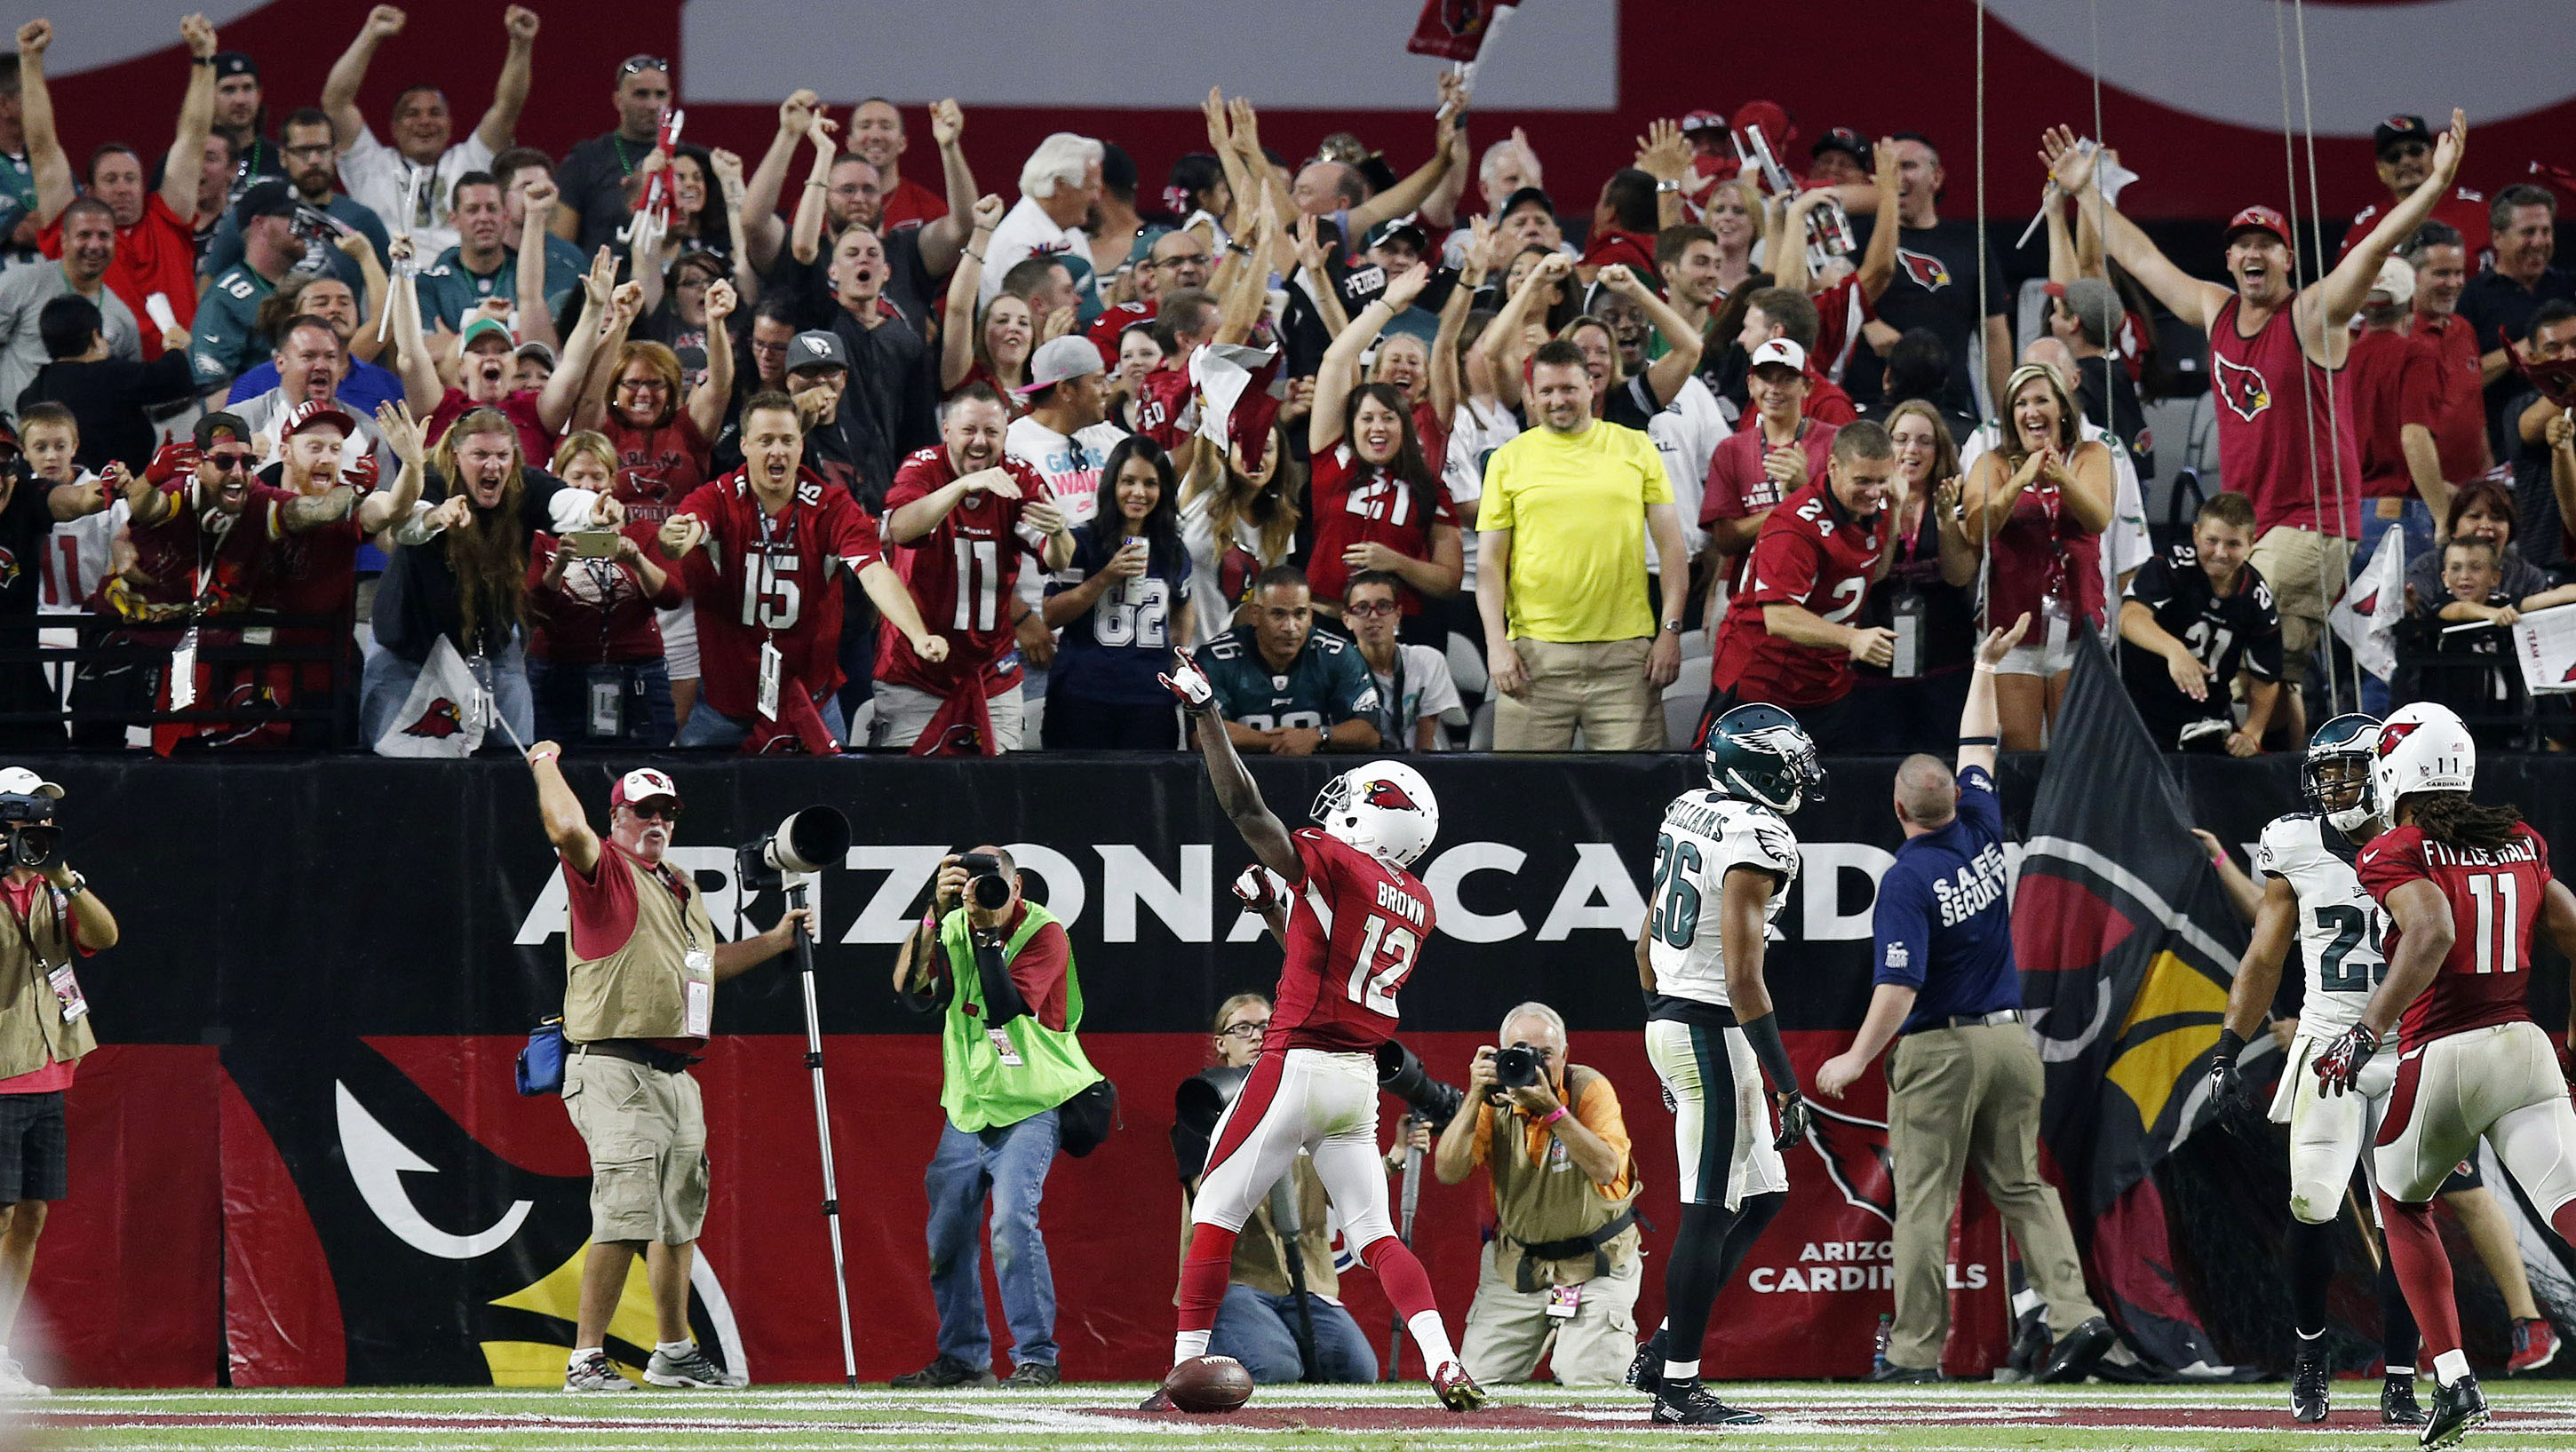 John Brown (12) celebrates his game-winning touchdown with fans. (AP)